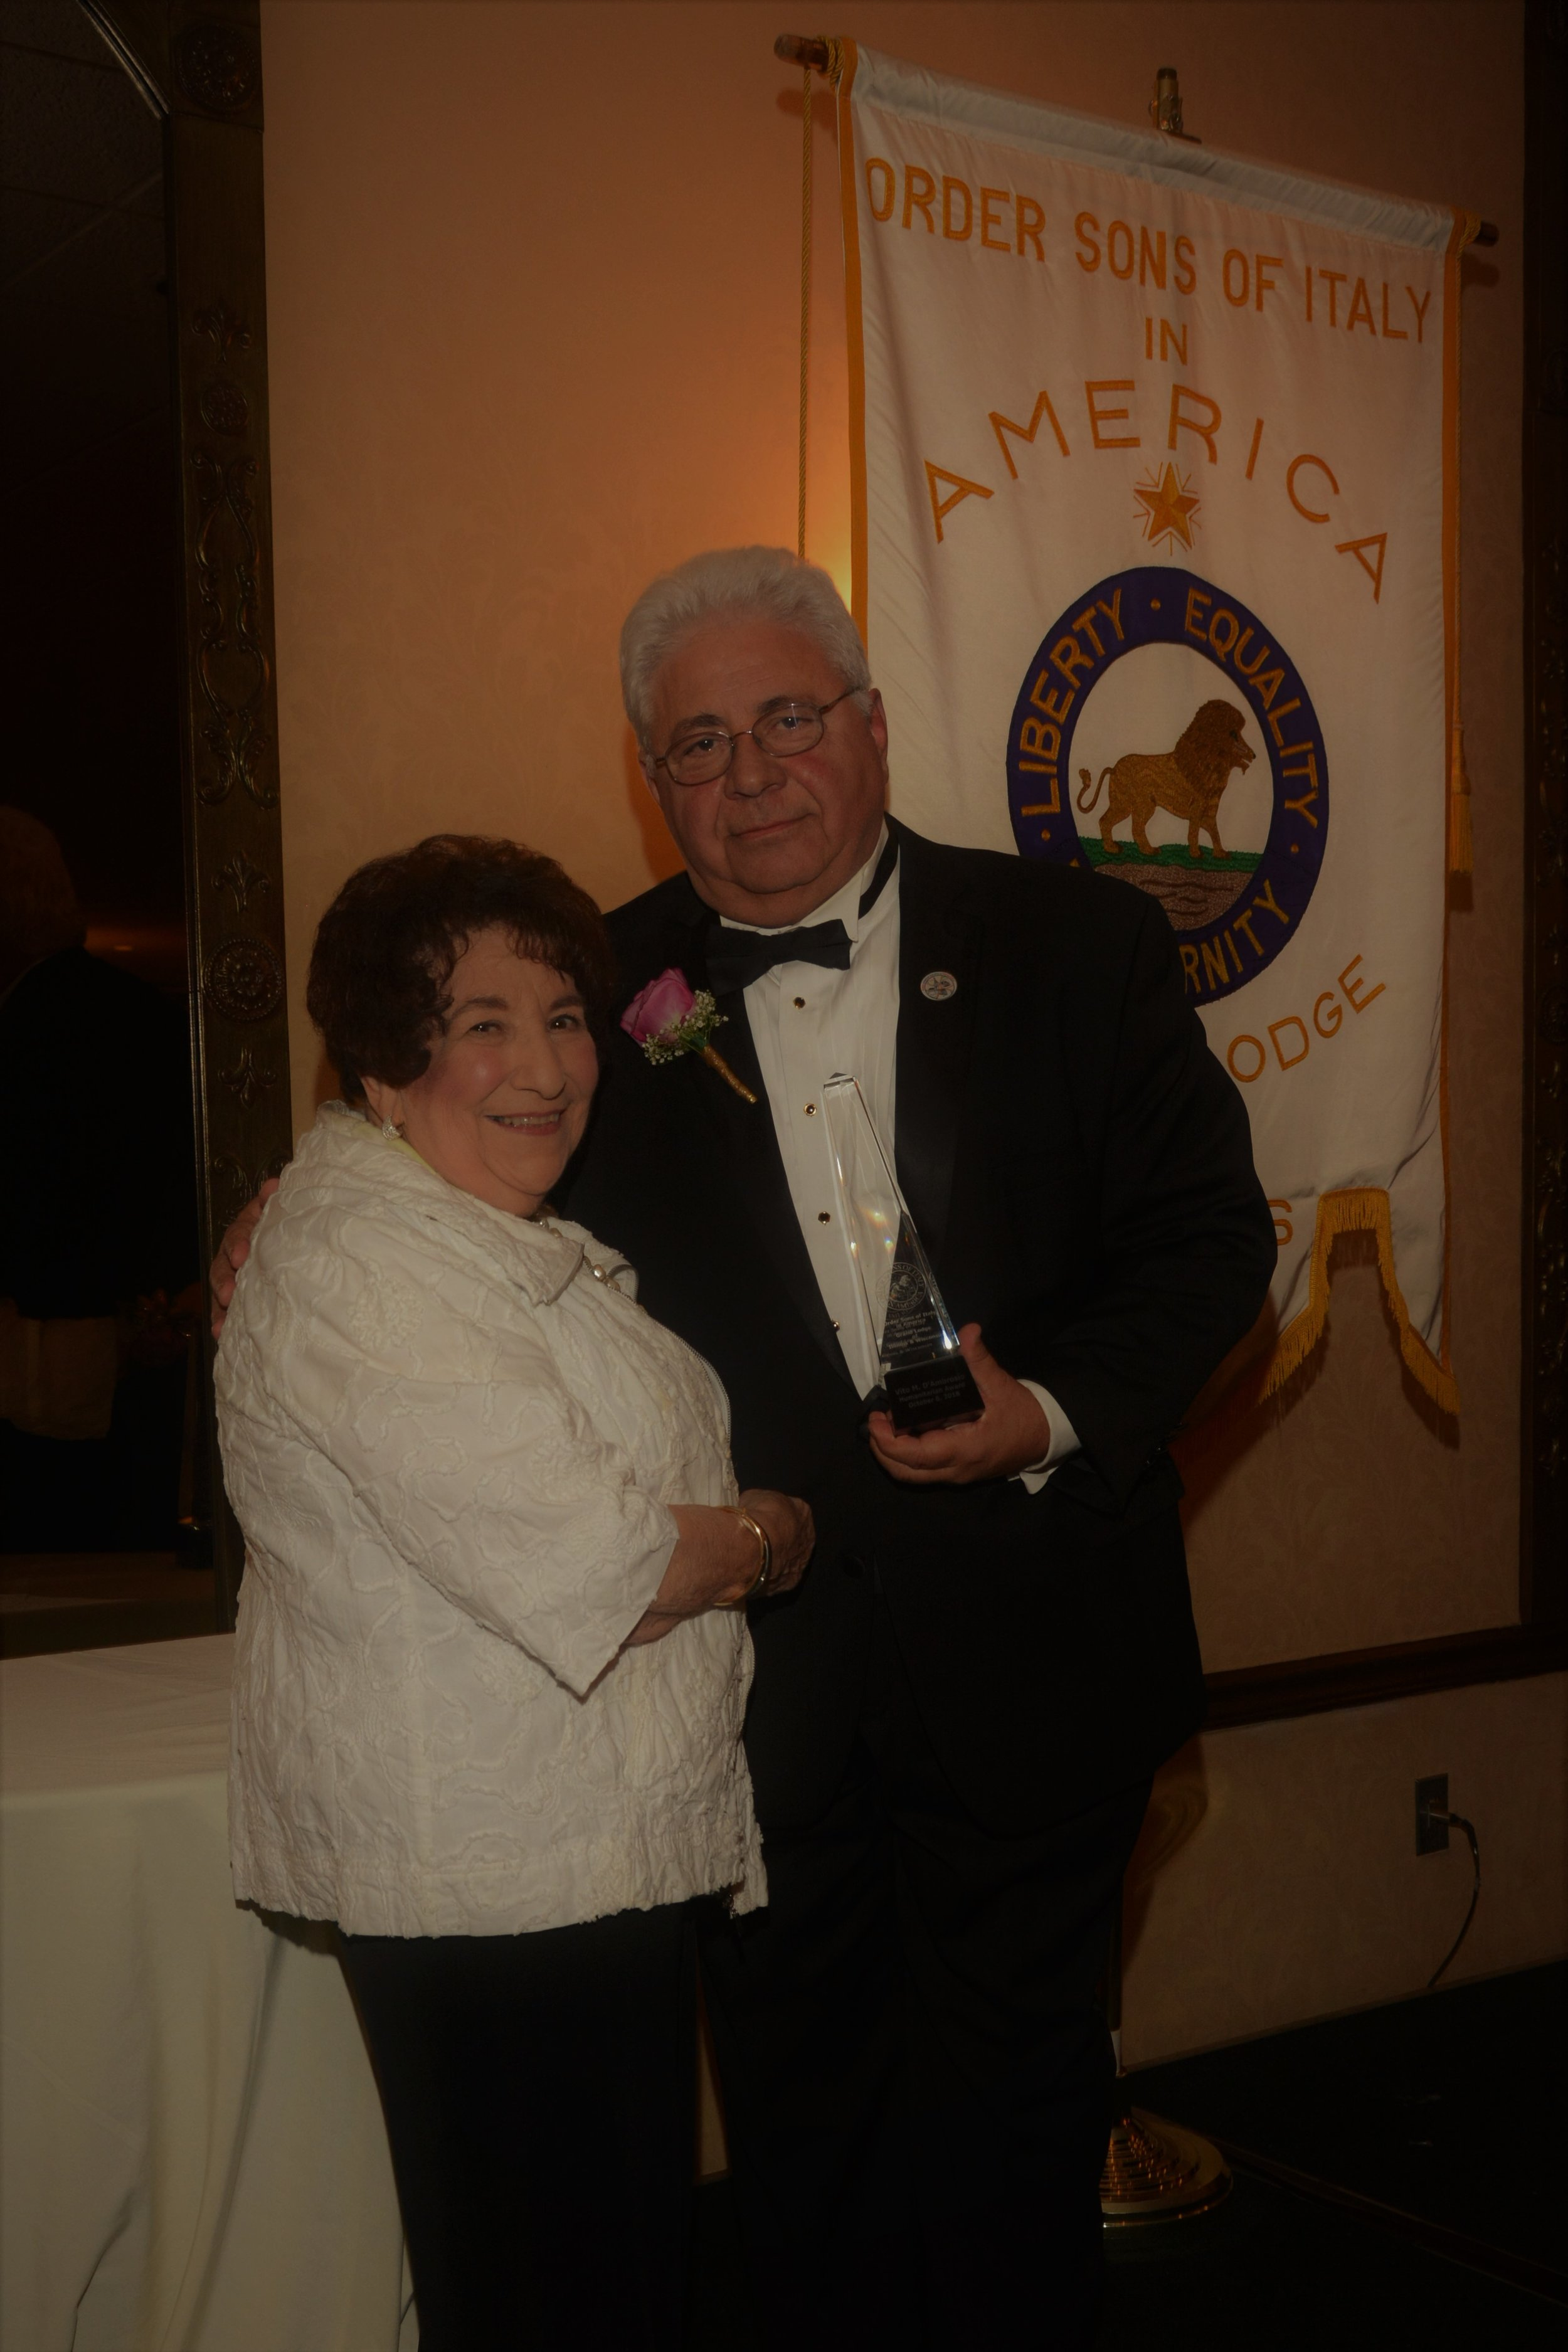 - Vito M. D'Ambrosio, President of the Italian American Executives of Transportation, was honored as OSIA's 2018 Humanitarian. D'Ambrosio was born in Ricigliano, Salerno, Italy and came to America in 1958 at the age of 4.Mr. D'Ambrosio became president of IAET in 2004 and remains as current president. Under his energetic leadership and organizational skills, IAET is actively engaged in the community.